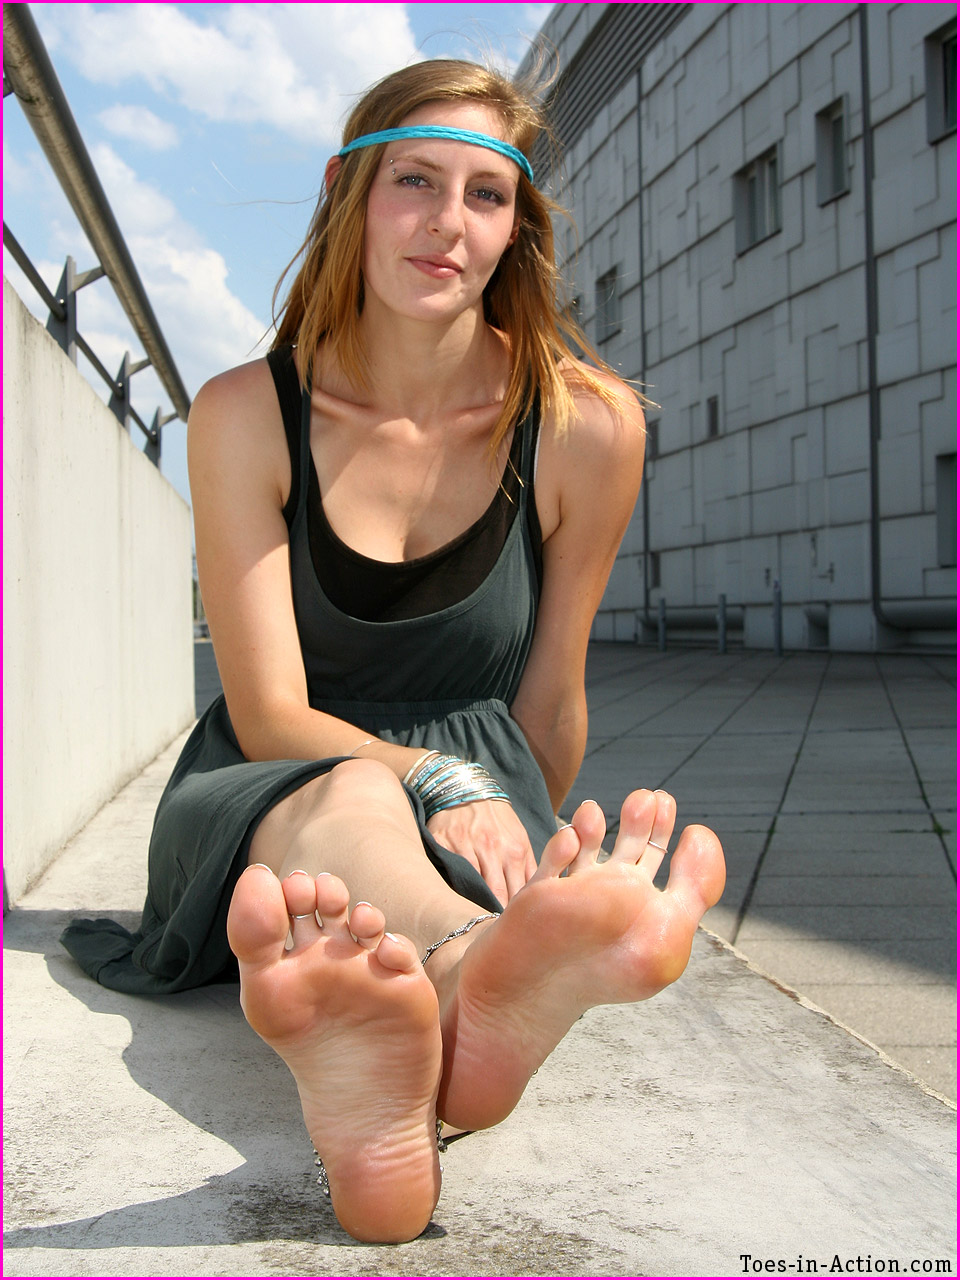 Trade toes-in-action her plastic